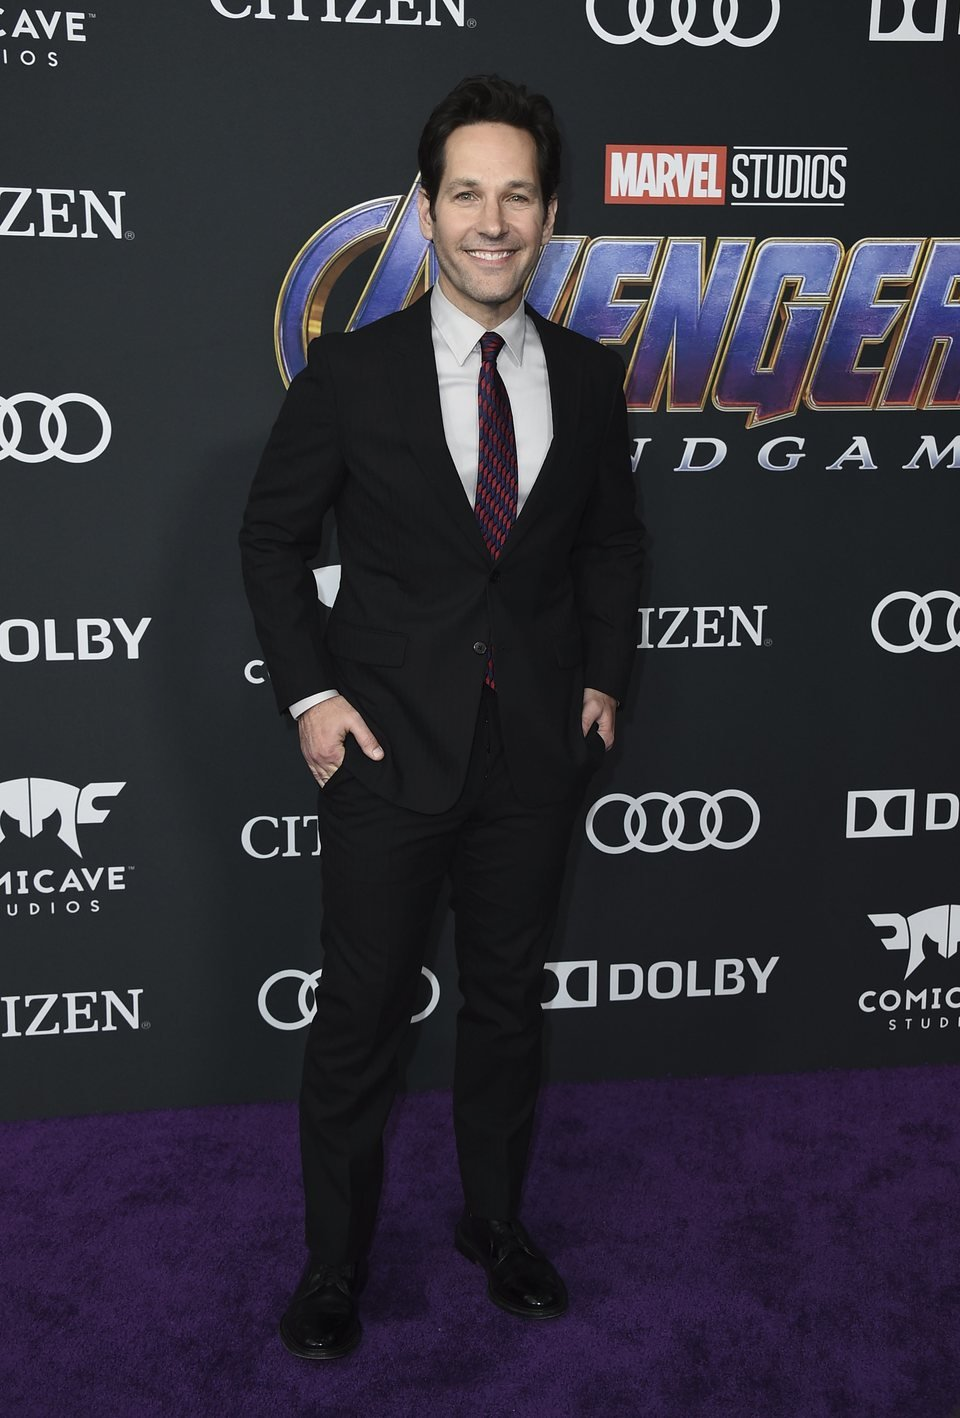 Paul Rudd on the red carpet of 'Avengers: Endgame'